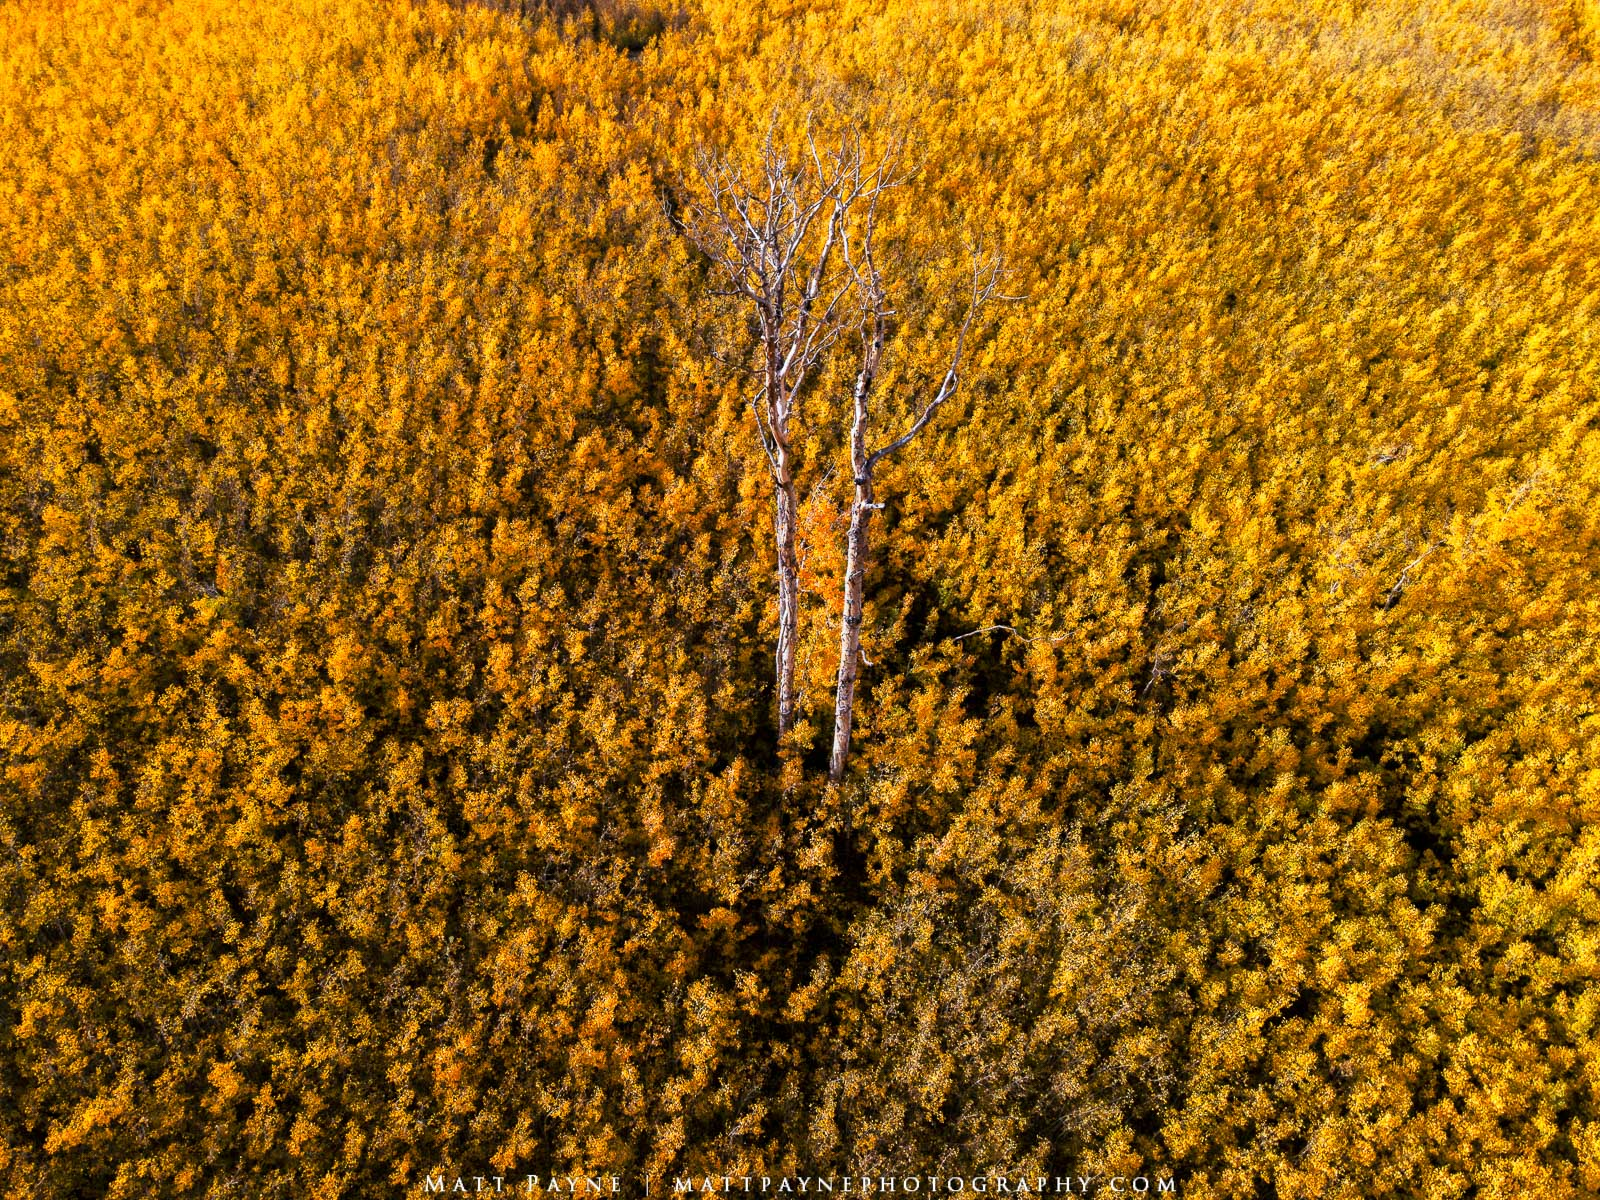 A meadow of new aspen saplings surrounds two single dead aspen in a scene that could potentially represent many ideas. Young...